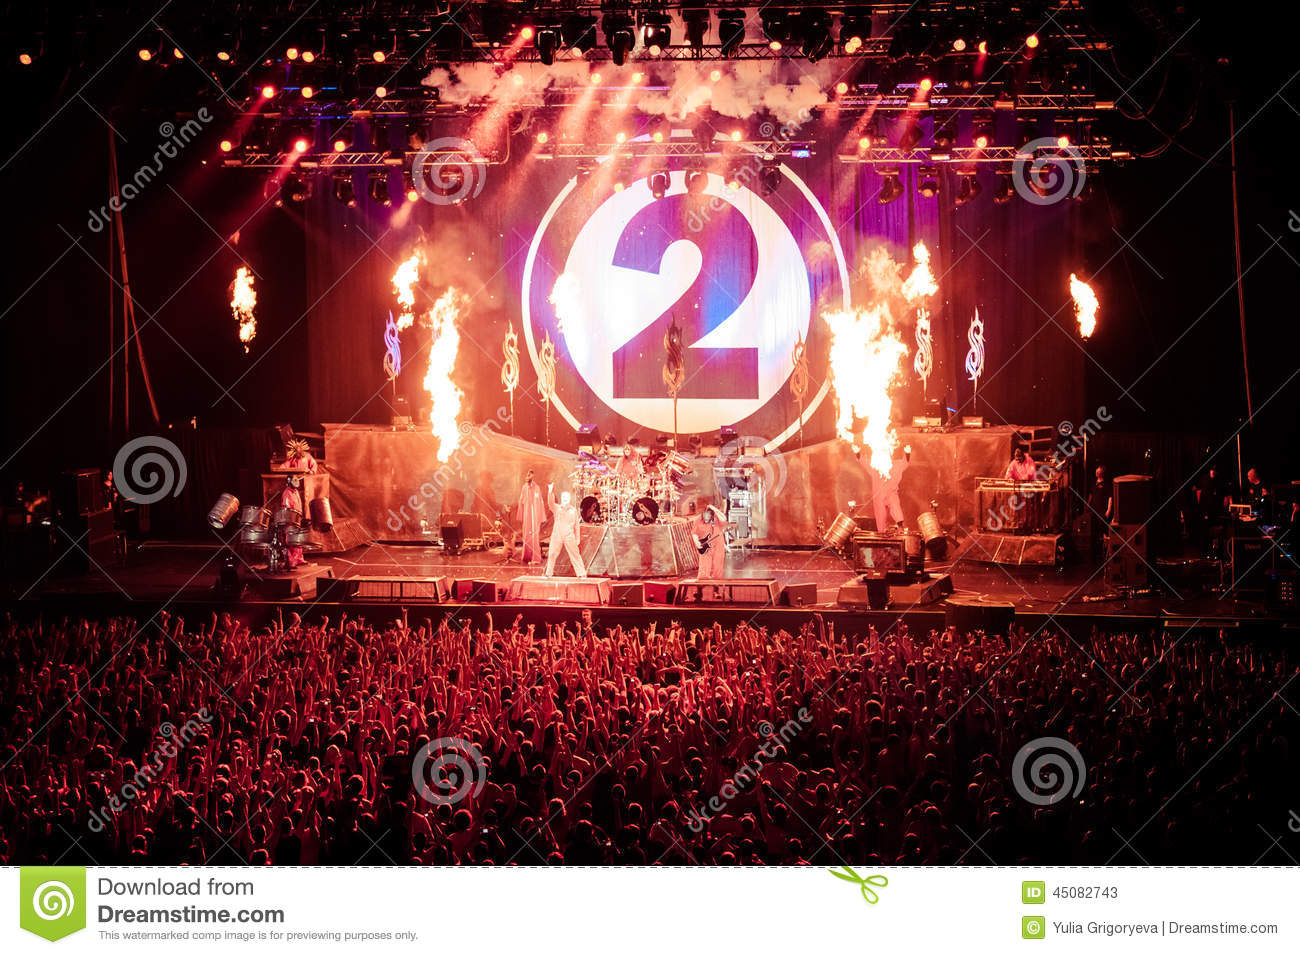 Slipknot Concert Editorial Stock Photo - Image: 45082743